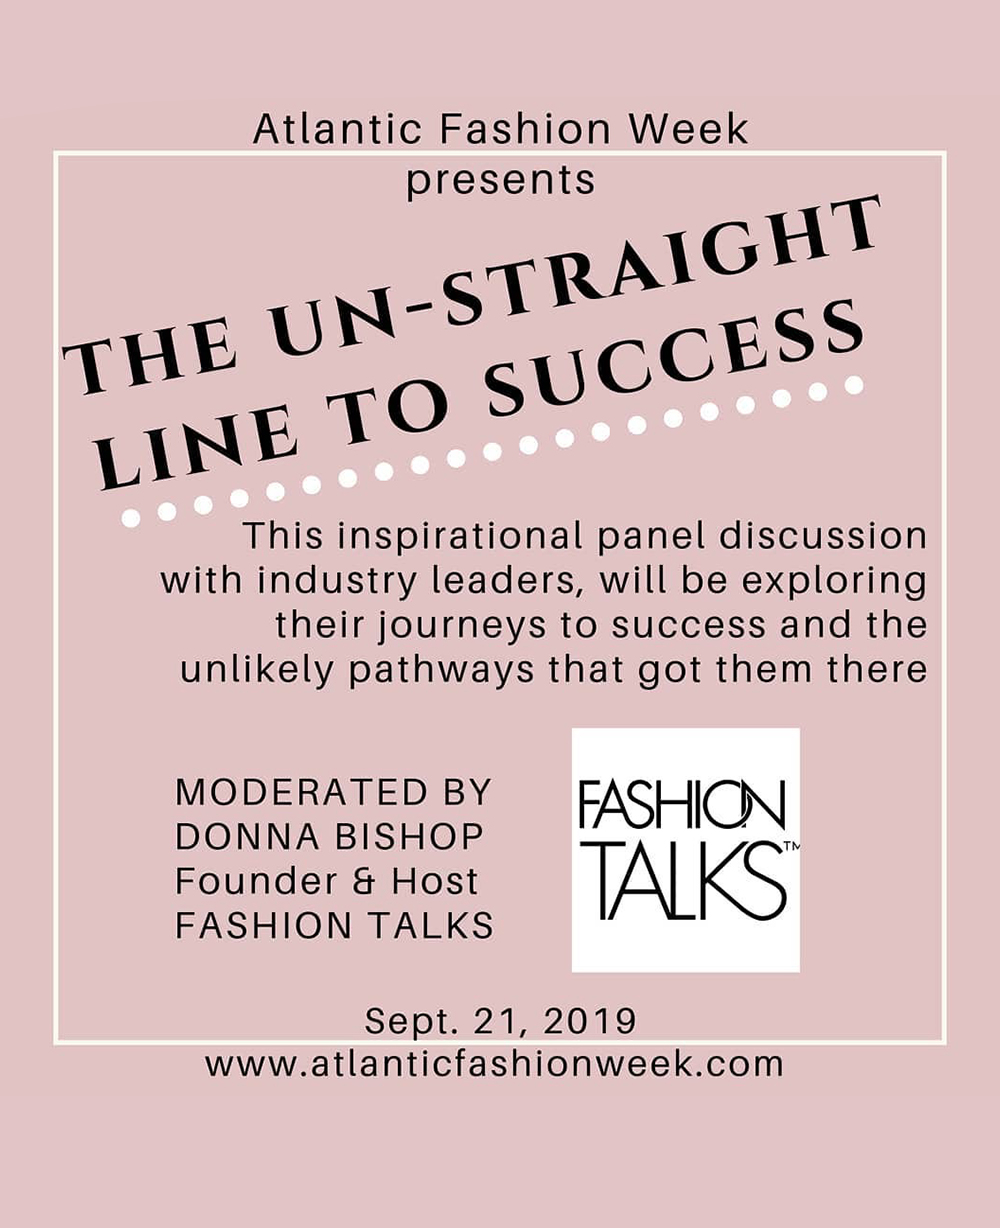 Atlantic Fashion Week Panel Discussion. Featuring FRIDA owner, Carrie Lamb.